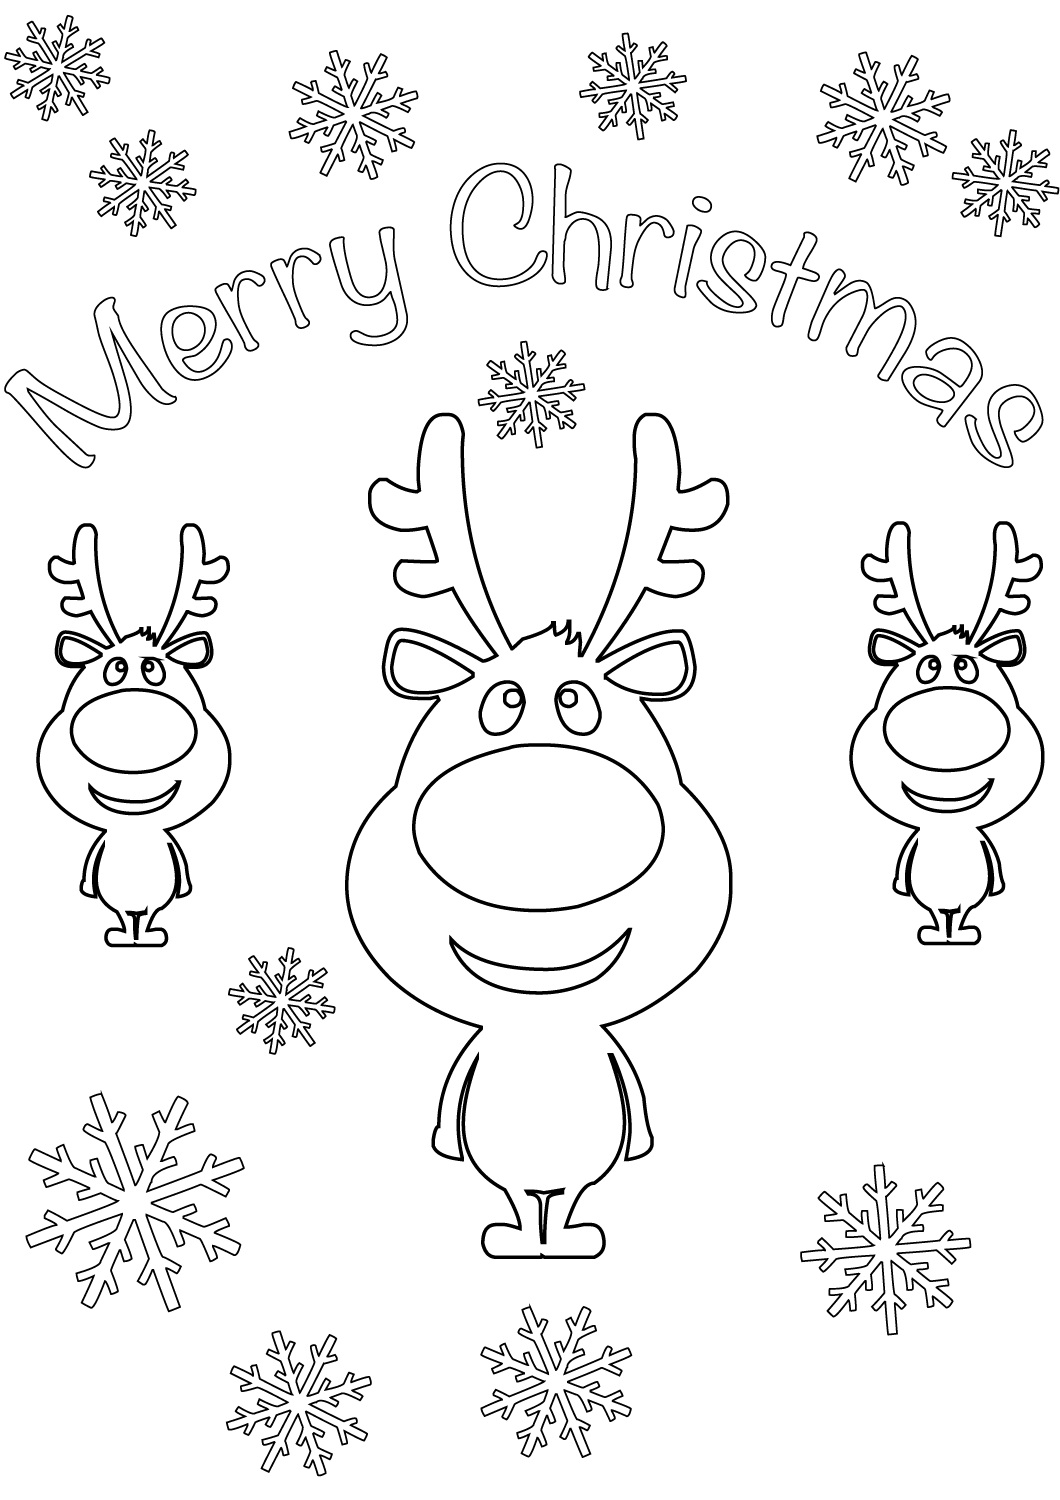 Reindeer Merry Christmas Cards Coloring Page